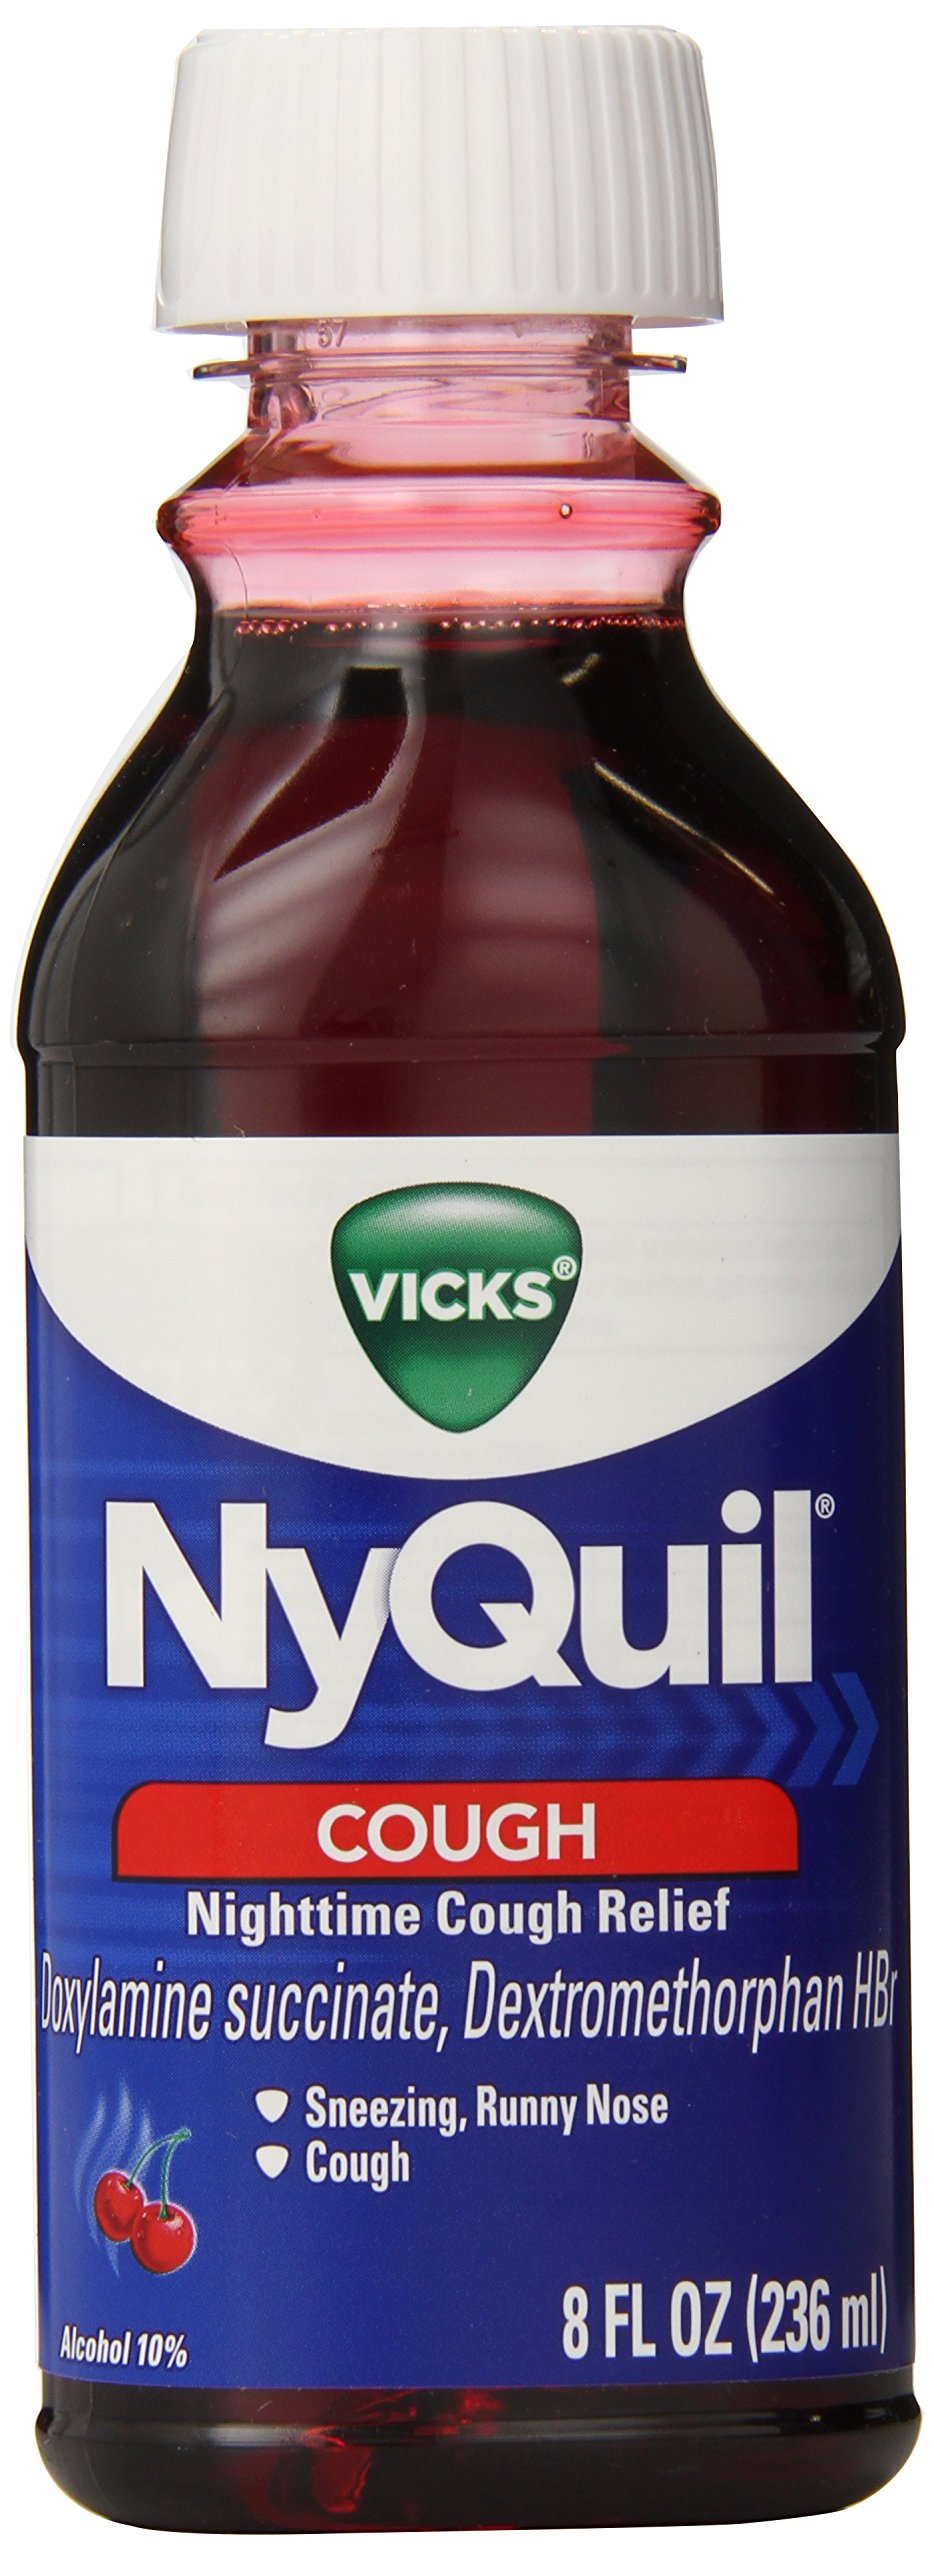 Vicks NyQuil Cough Night time Relief Cherry Flavor Liquid, 8 Ounce (Pack of 12)